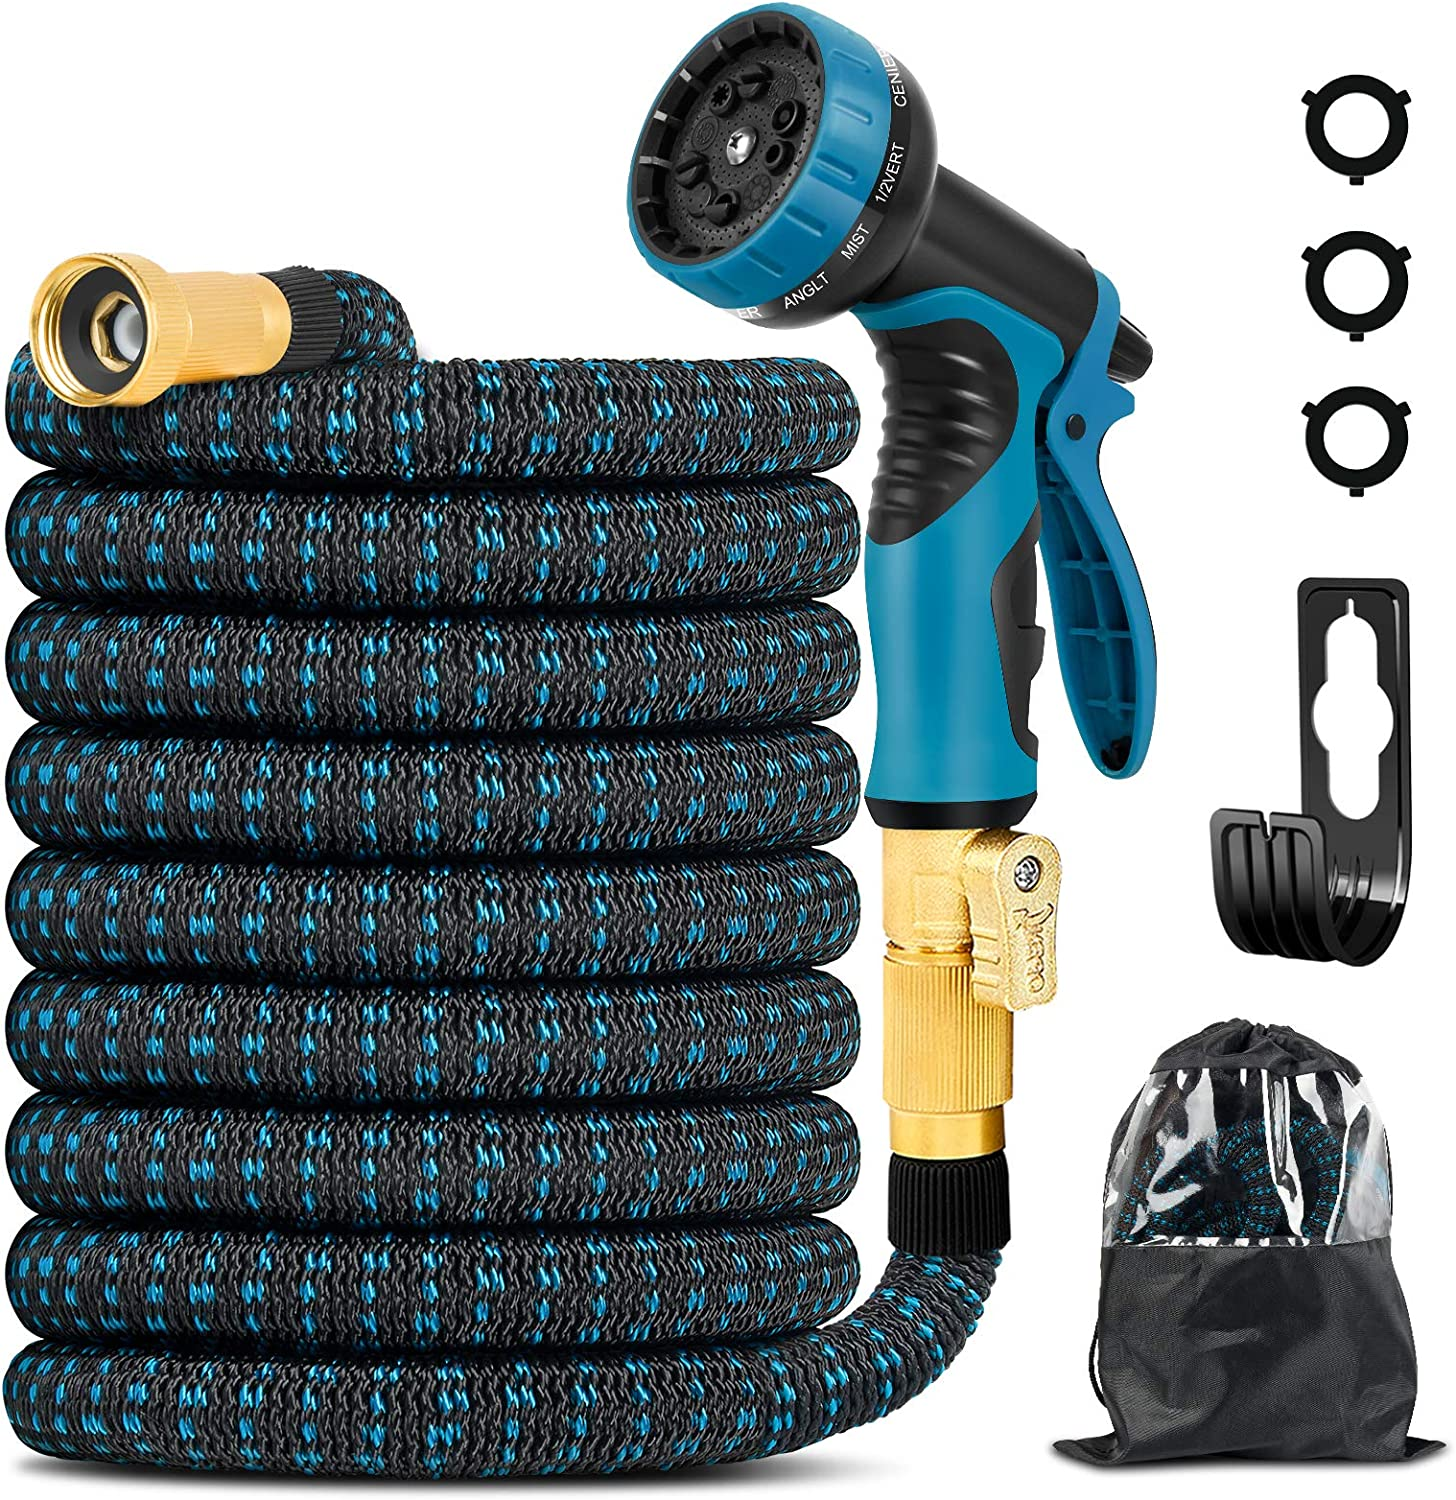 25ft Expandable Garden Hose - Flexible Water Hose 3/4 Inch Solid Brass Connector with 10 Function Nozzle and Storage Bag, Expanding Hose for Watering Flowers, Lawn, Cleaning